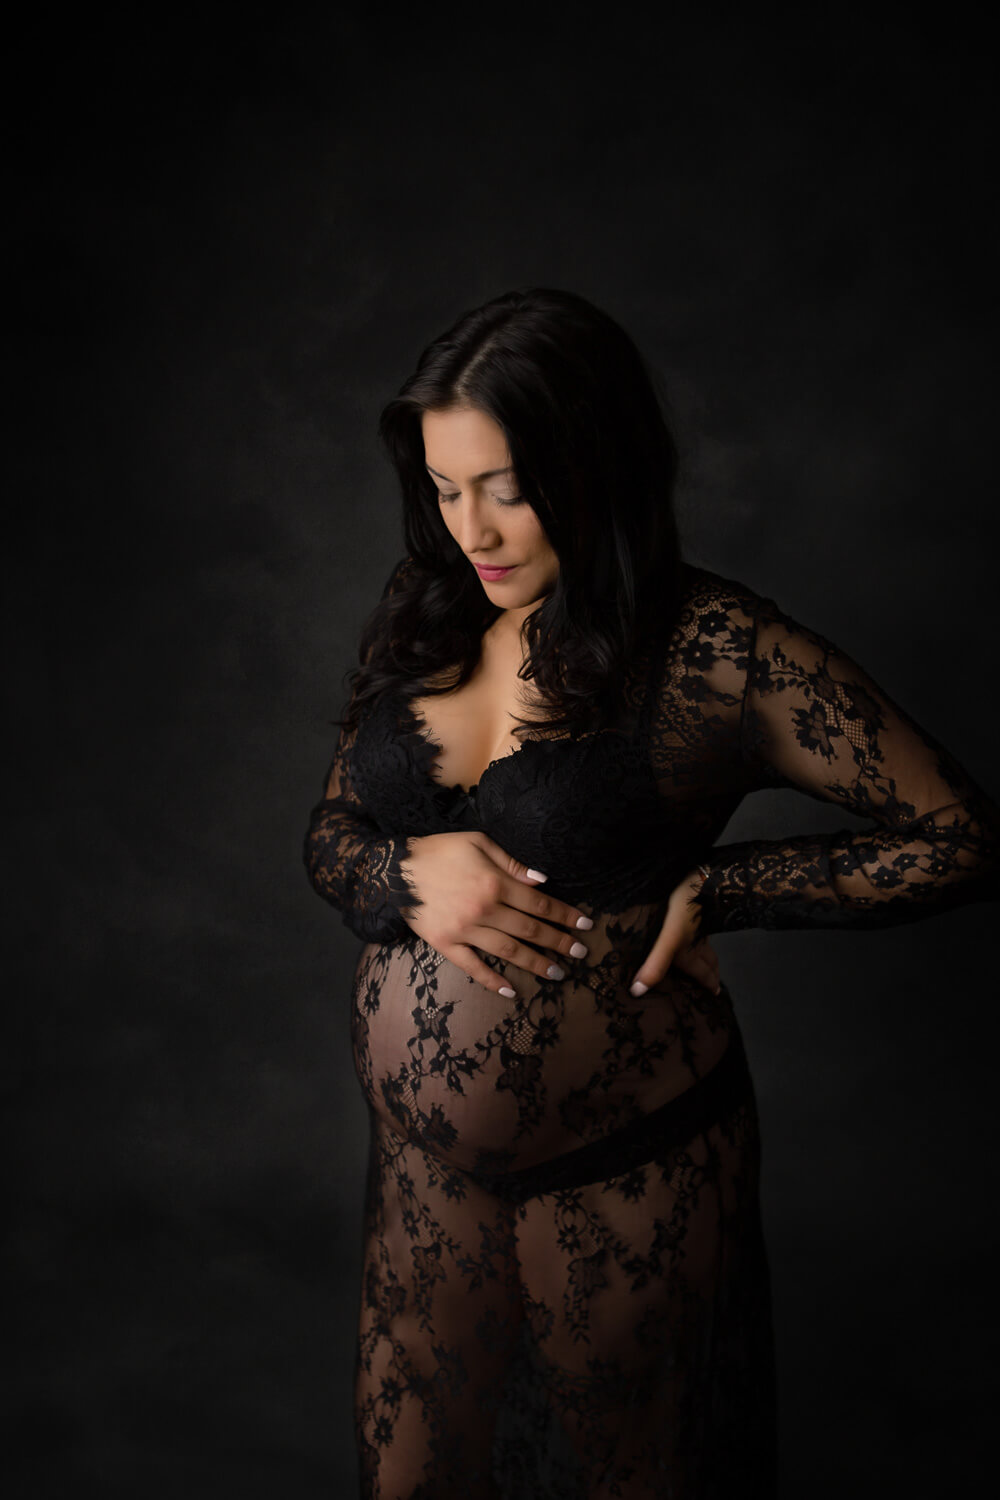 pregnant woman posing for maternity photo in black lace gown looking at her belly